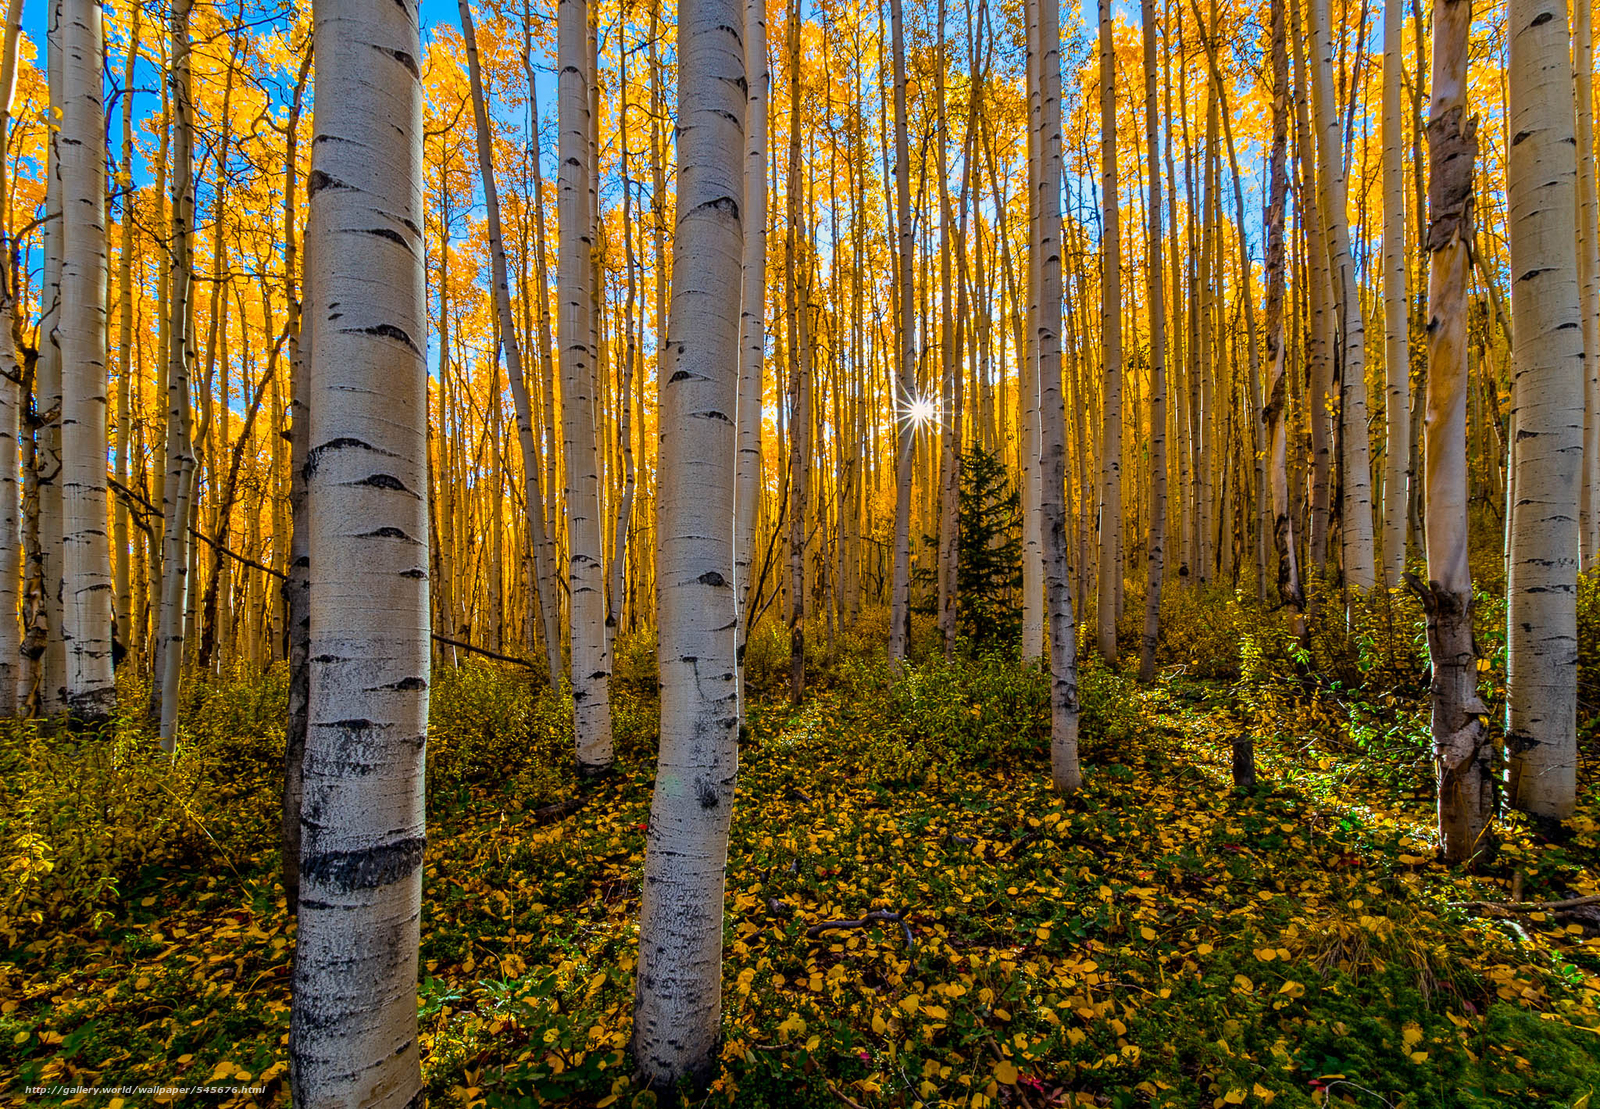 Download Wallpaper Autumn, Fall Color, Forest, Colorado - High Resolution Beautiful Background - HD Wallpaper